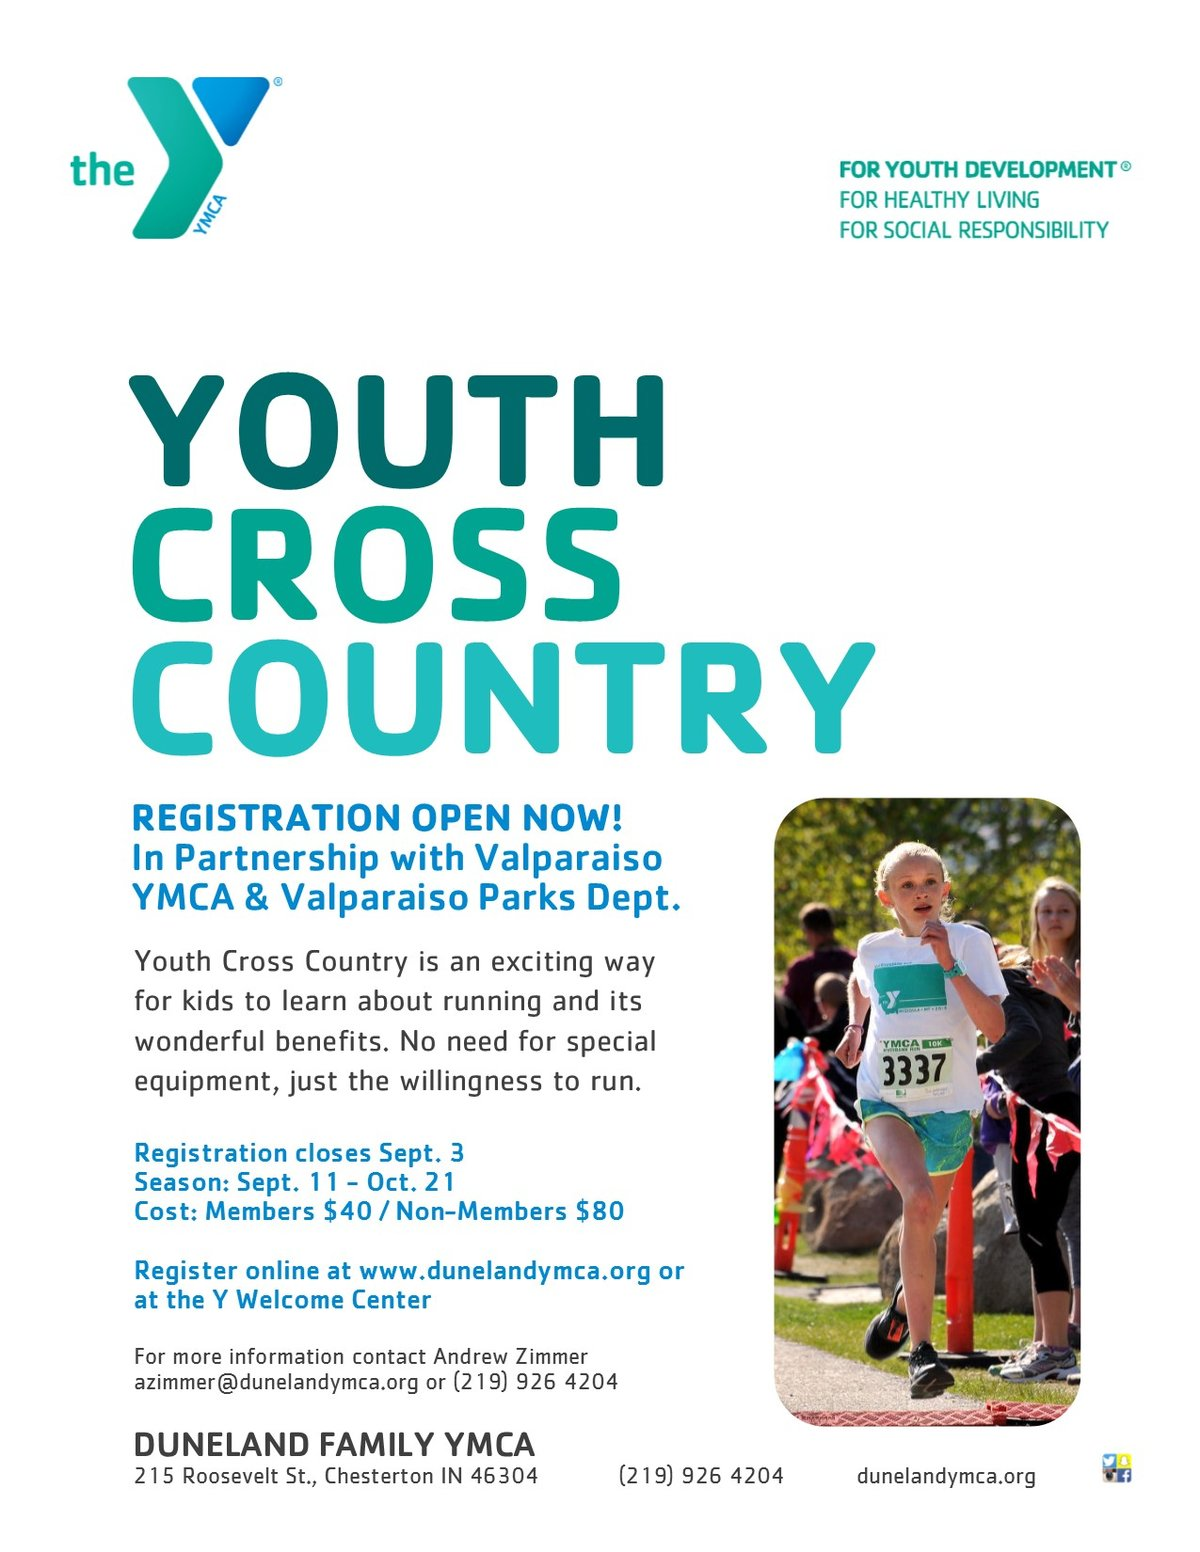 Duneland Family YMCA Youth Cross Country Starts September 11, 2017